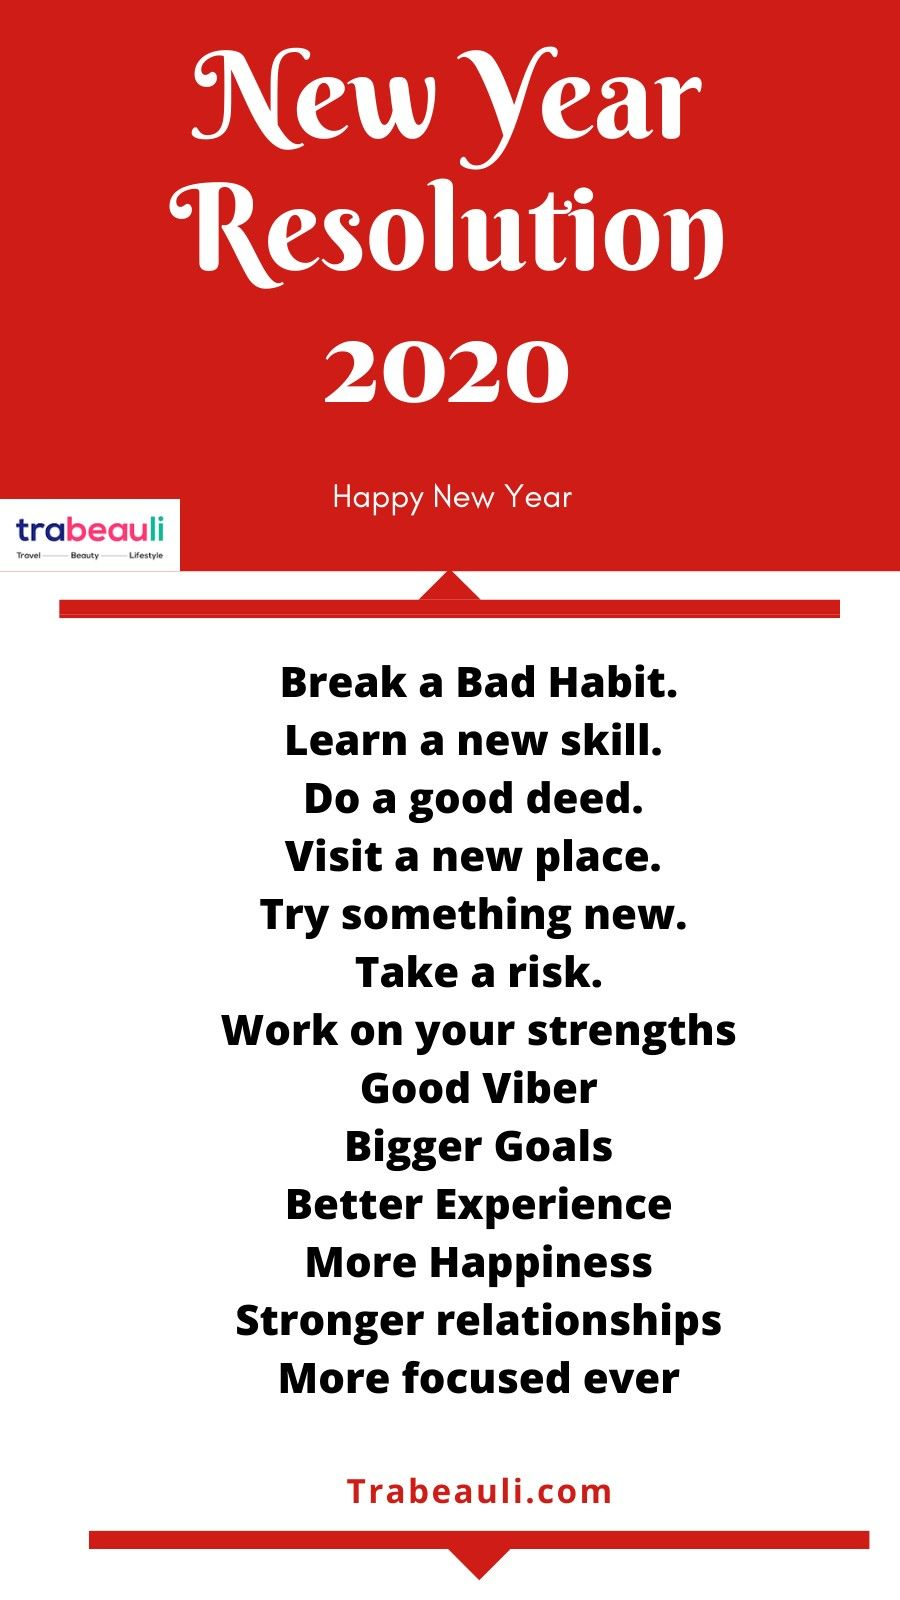 Happy New Year Wishes 2020 Resolution, Quotes For